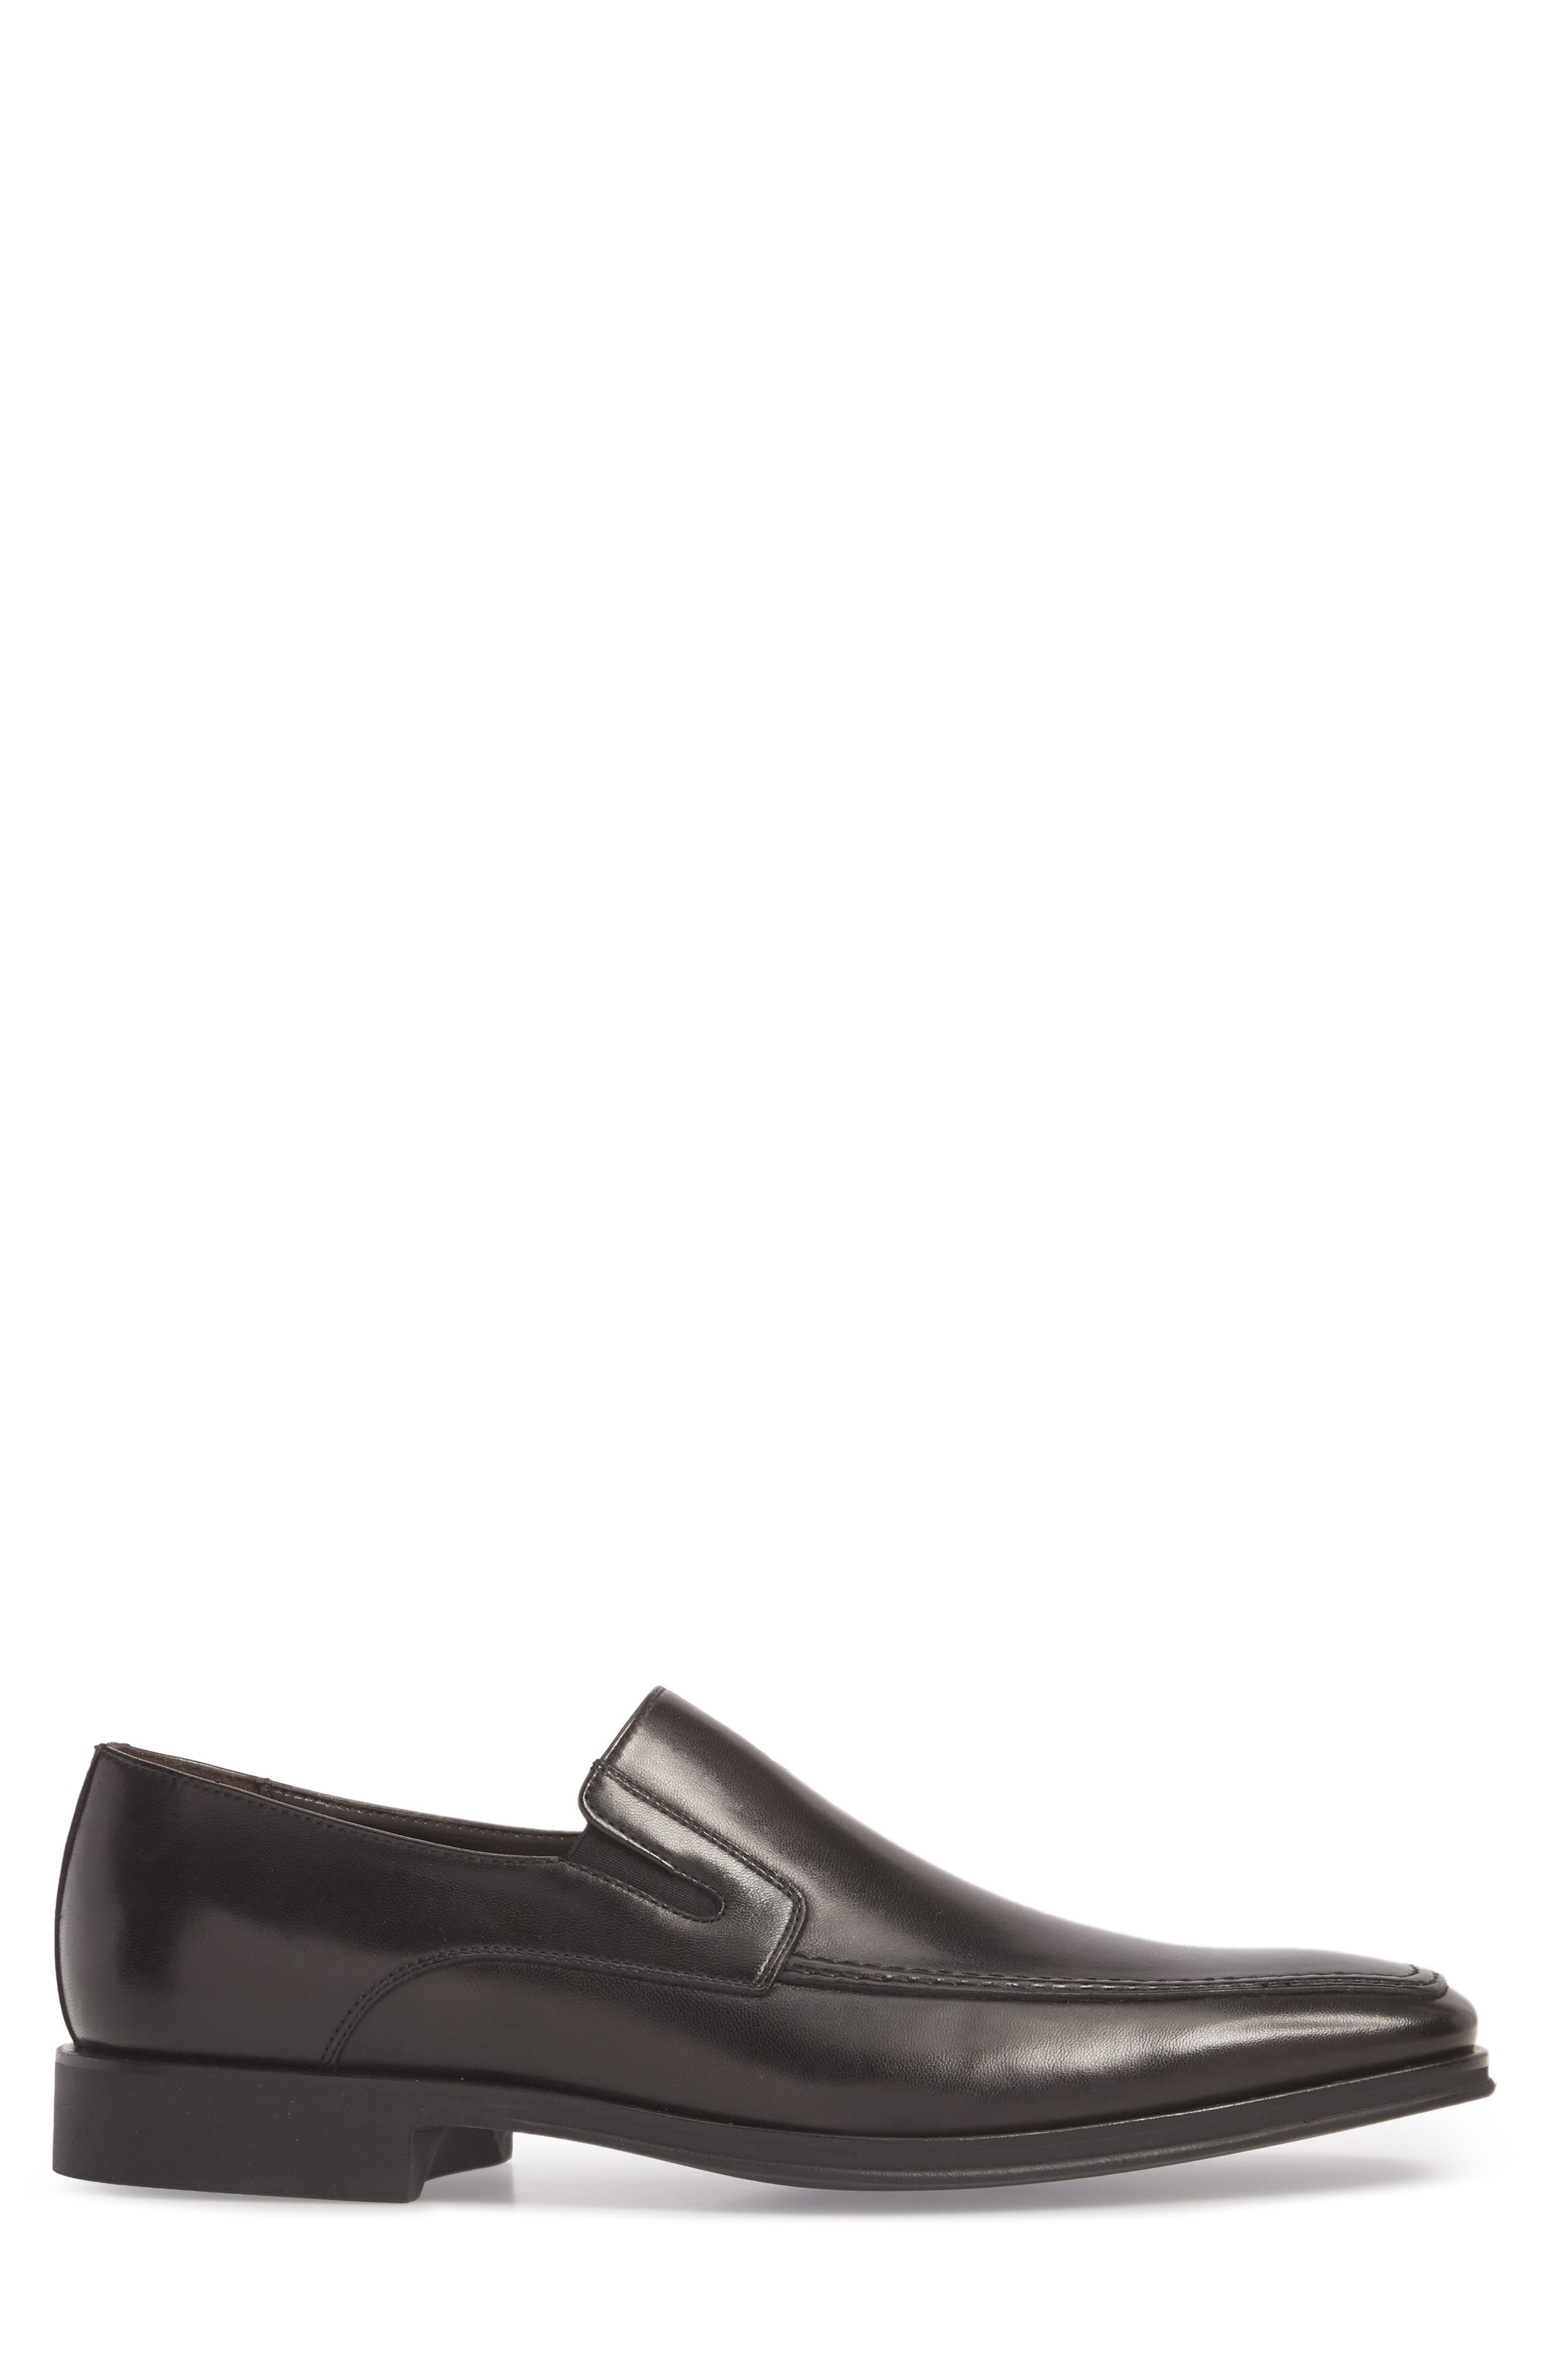 MONTE ROSSO, Lucca Nappa Leather Loafer, Alternate thumbnail 3, color, BLACK